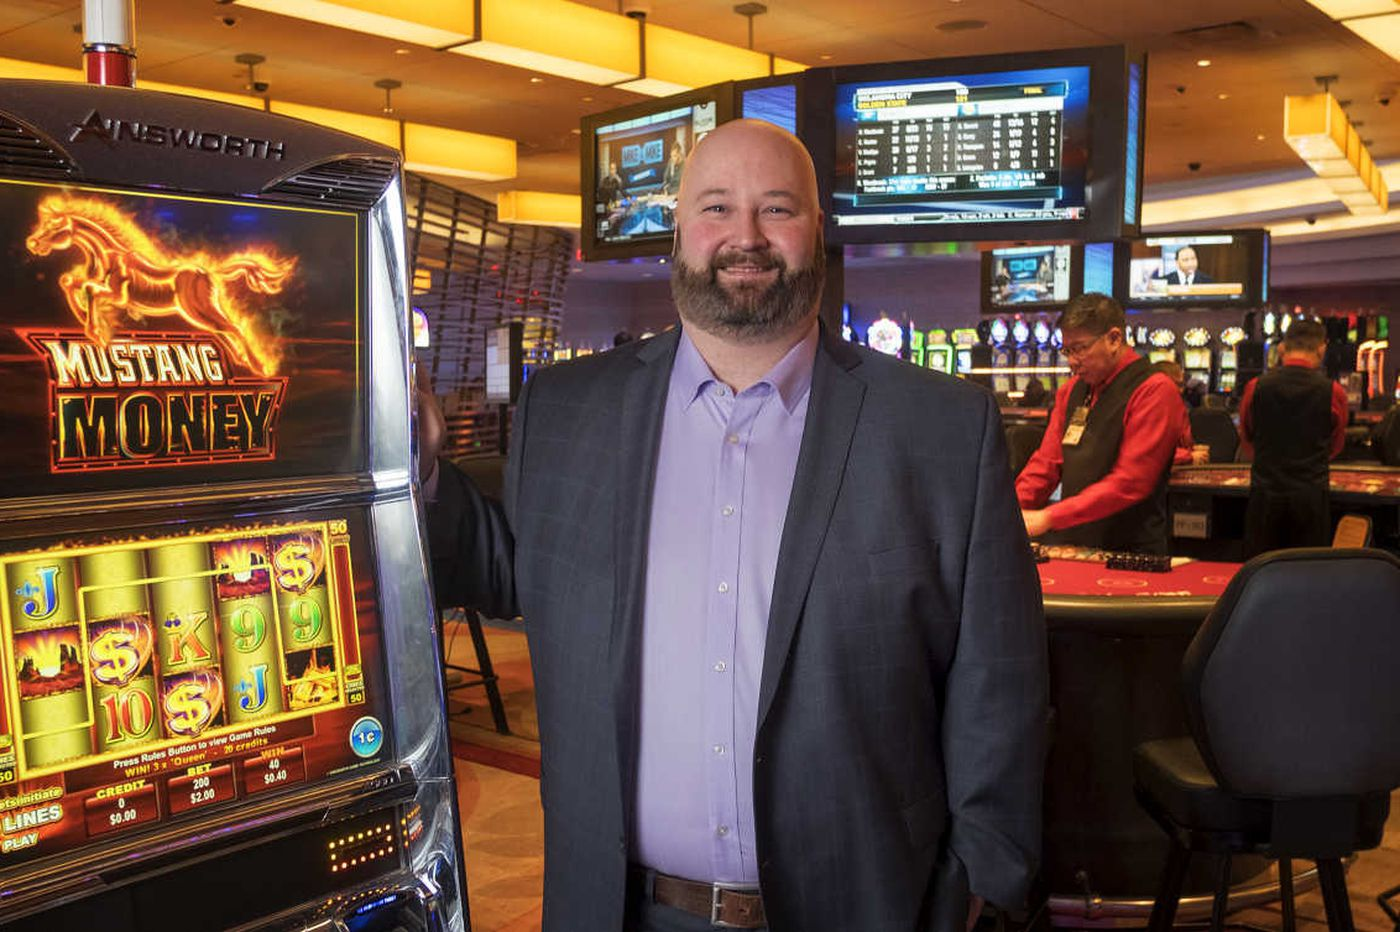 At Valley Forge casino, new CEO bets on new slots